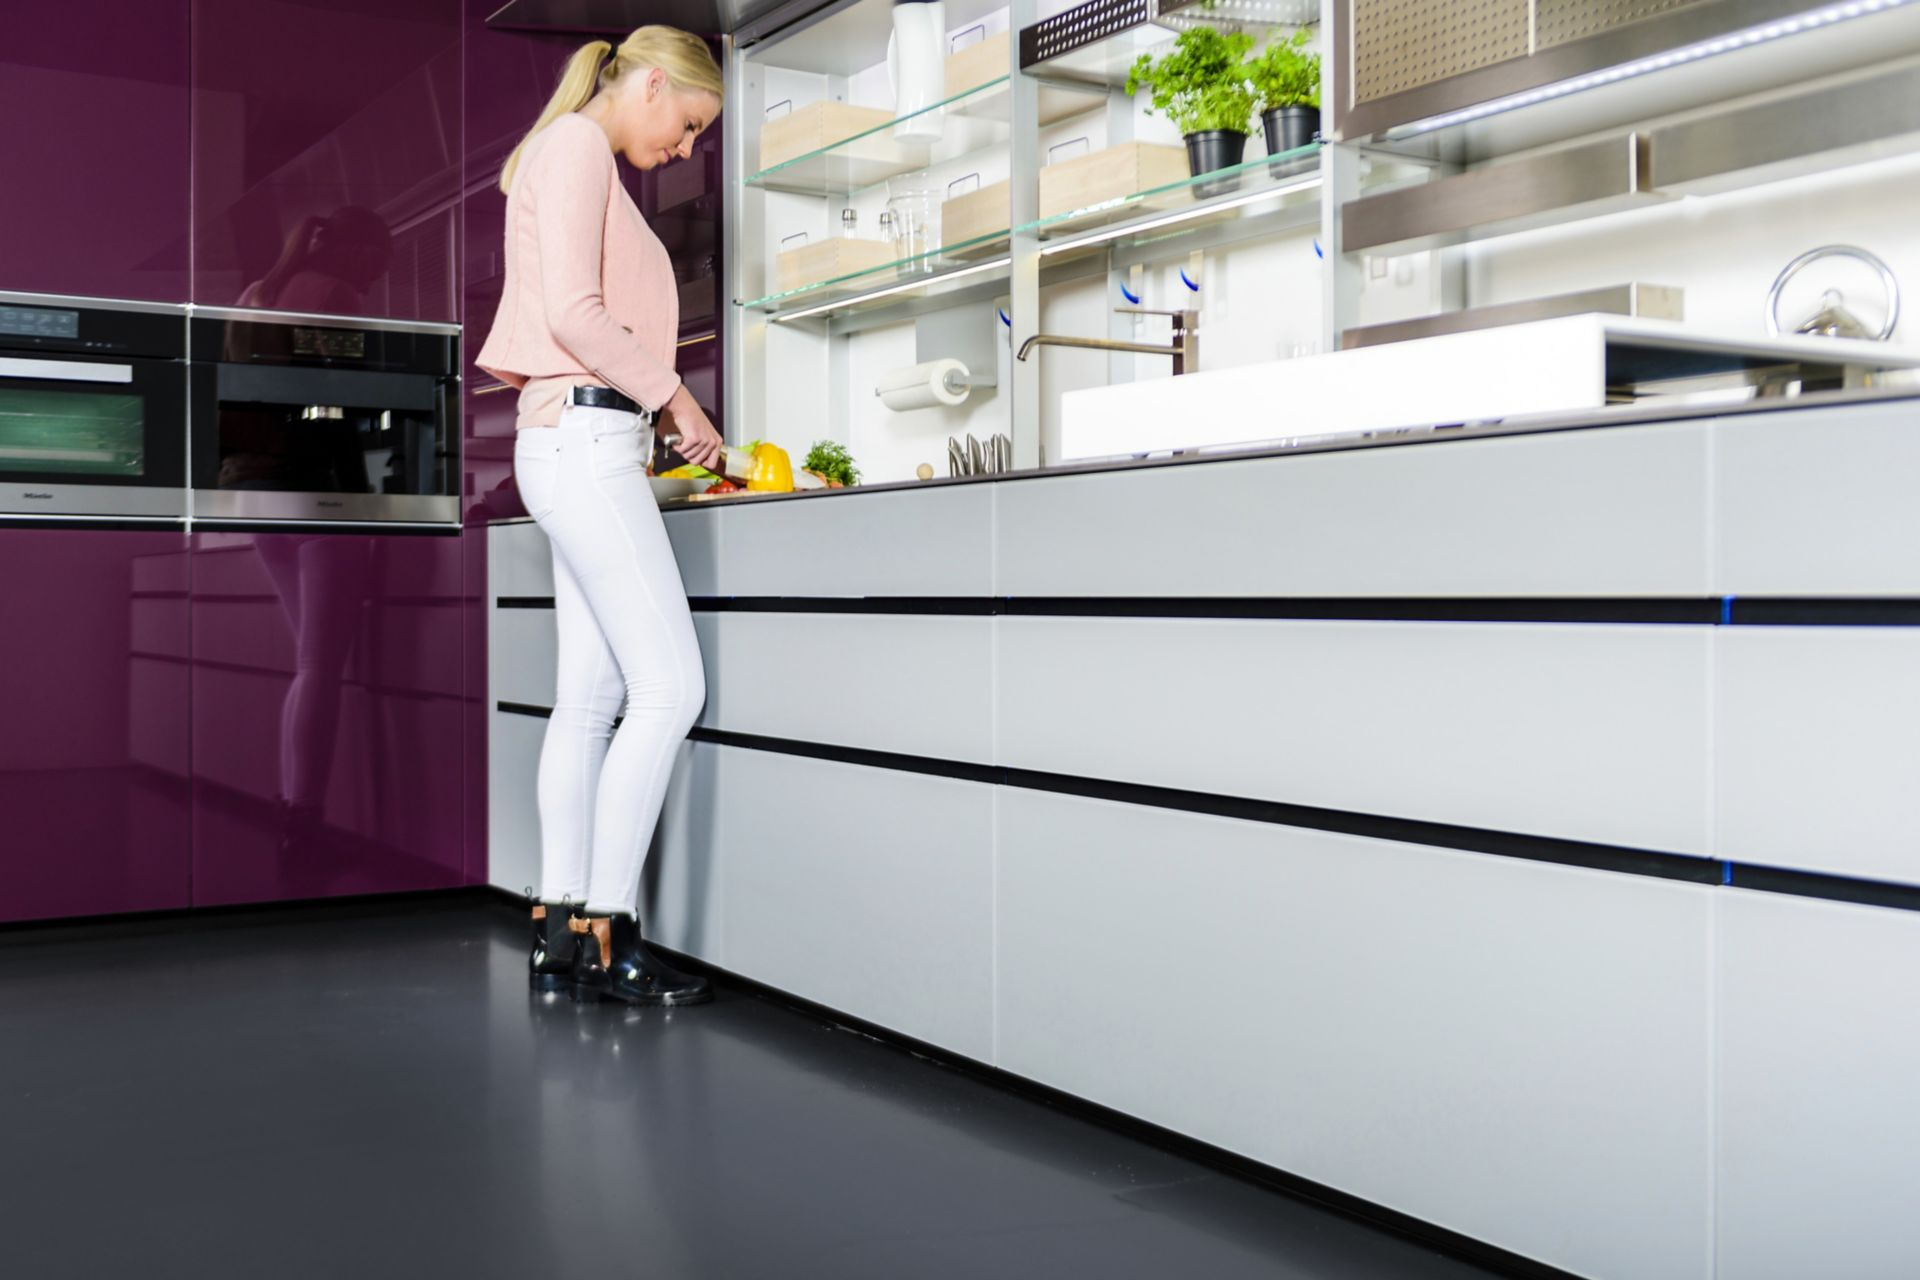 Sika ComfortFloor® dark grey floor in kitchen with woman cutting vegetables